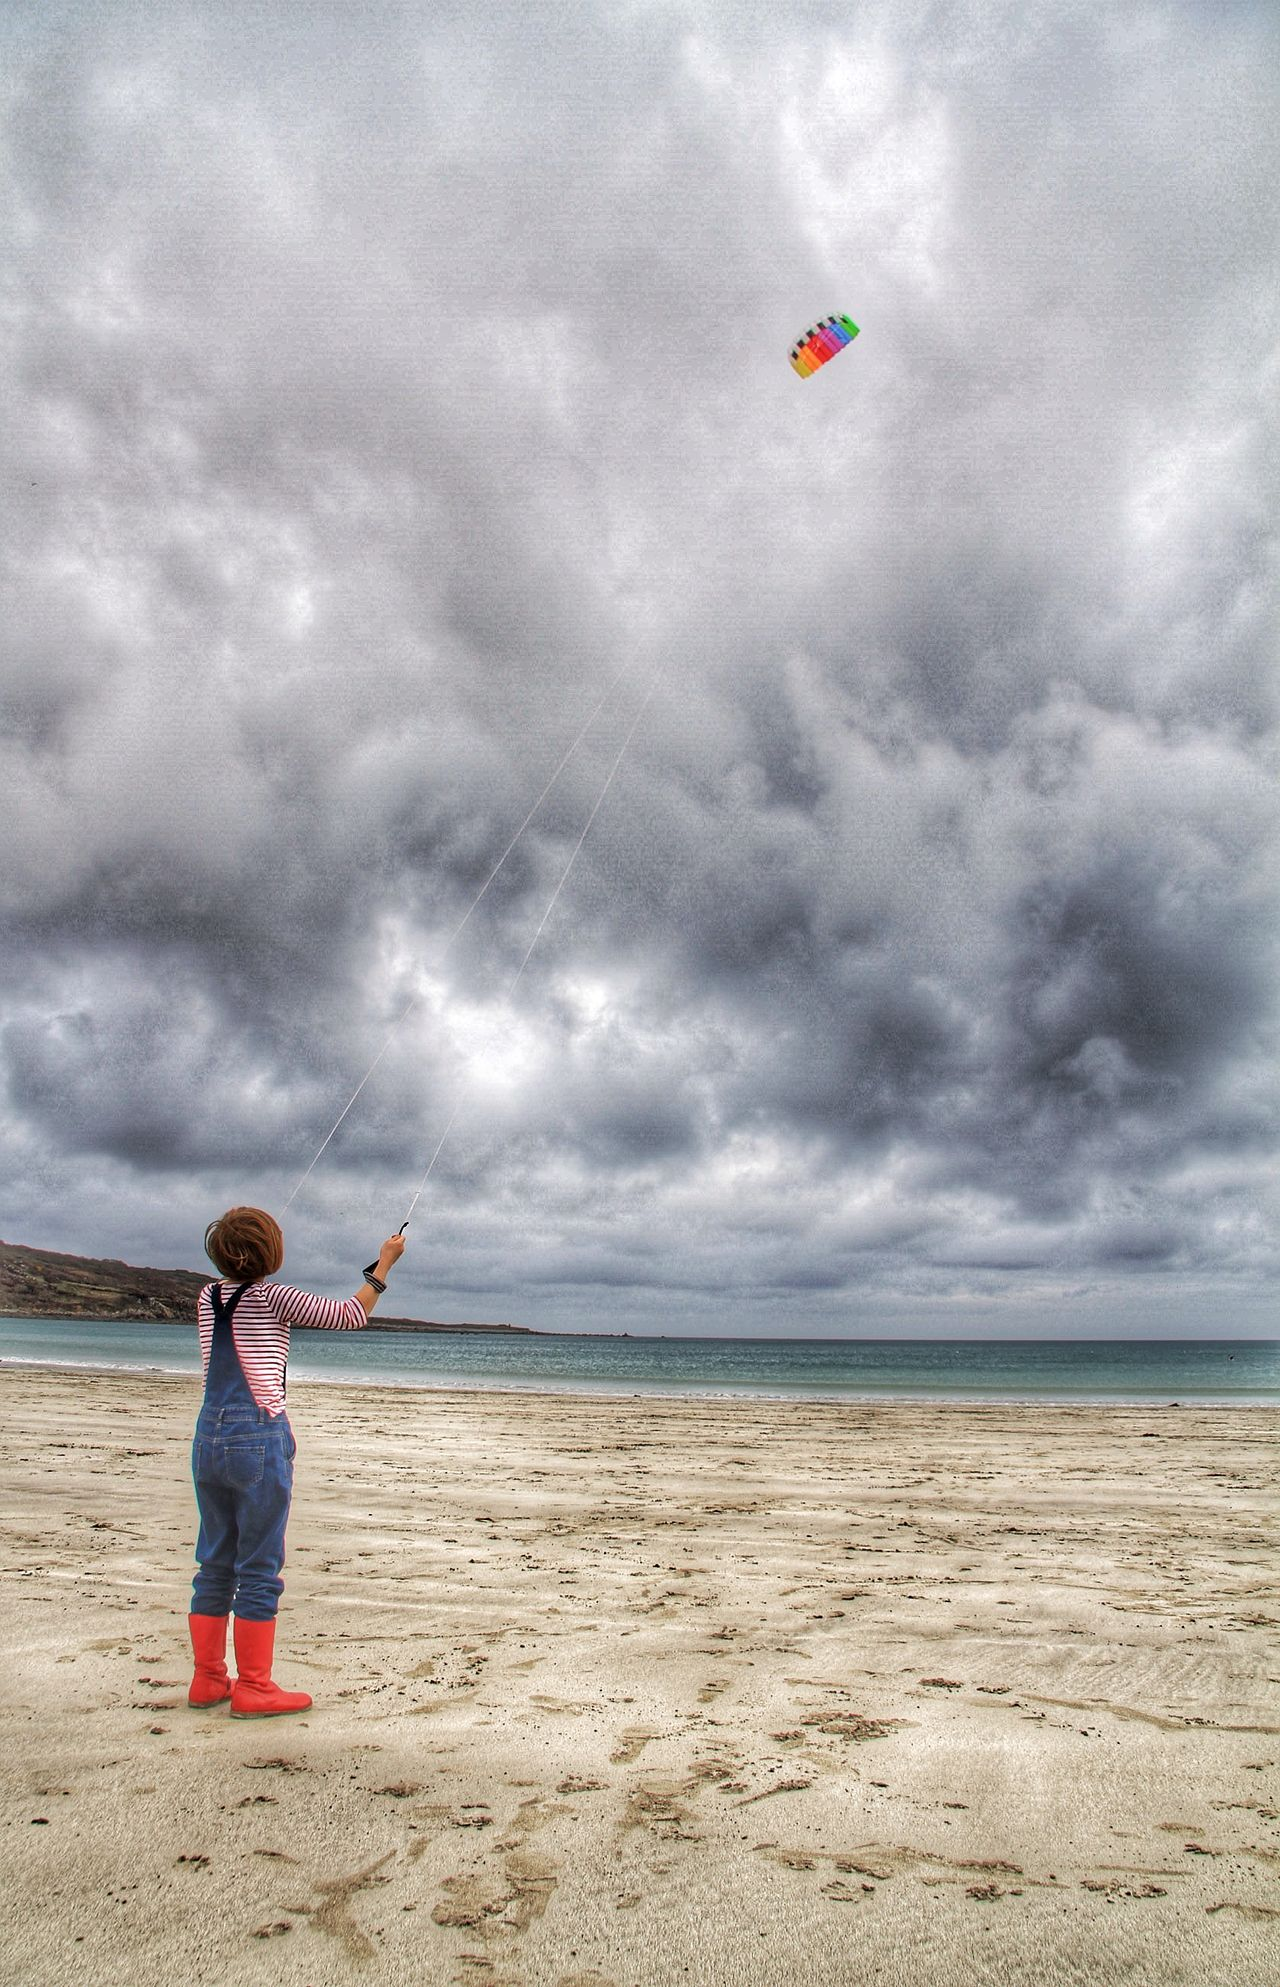 Beach Beachphotography Life Is A Beach Kite Kite Flying Flying A Kite Girl Young Girl Wellies  Cornwall Wind Windy Windy Day Fun Leisure Activity Kids Being Kids Kids Playing